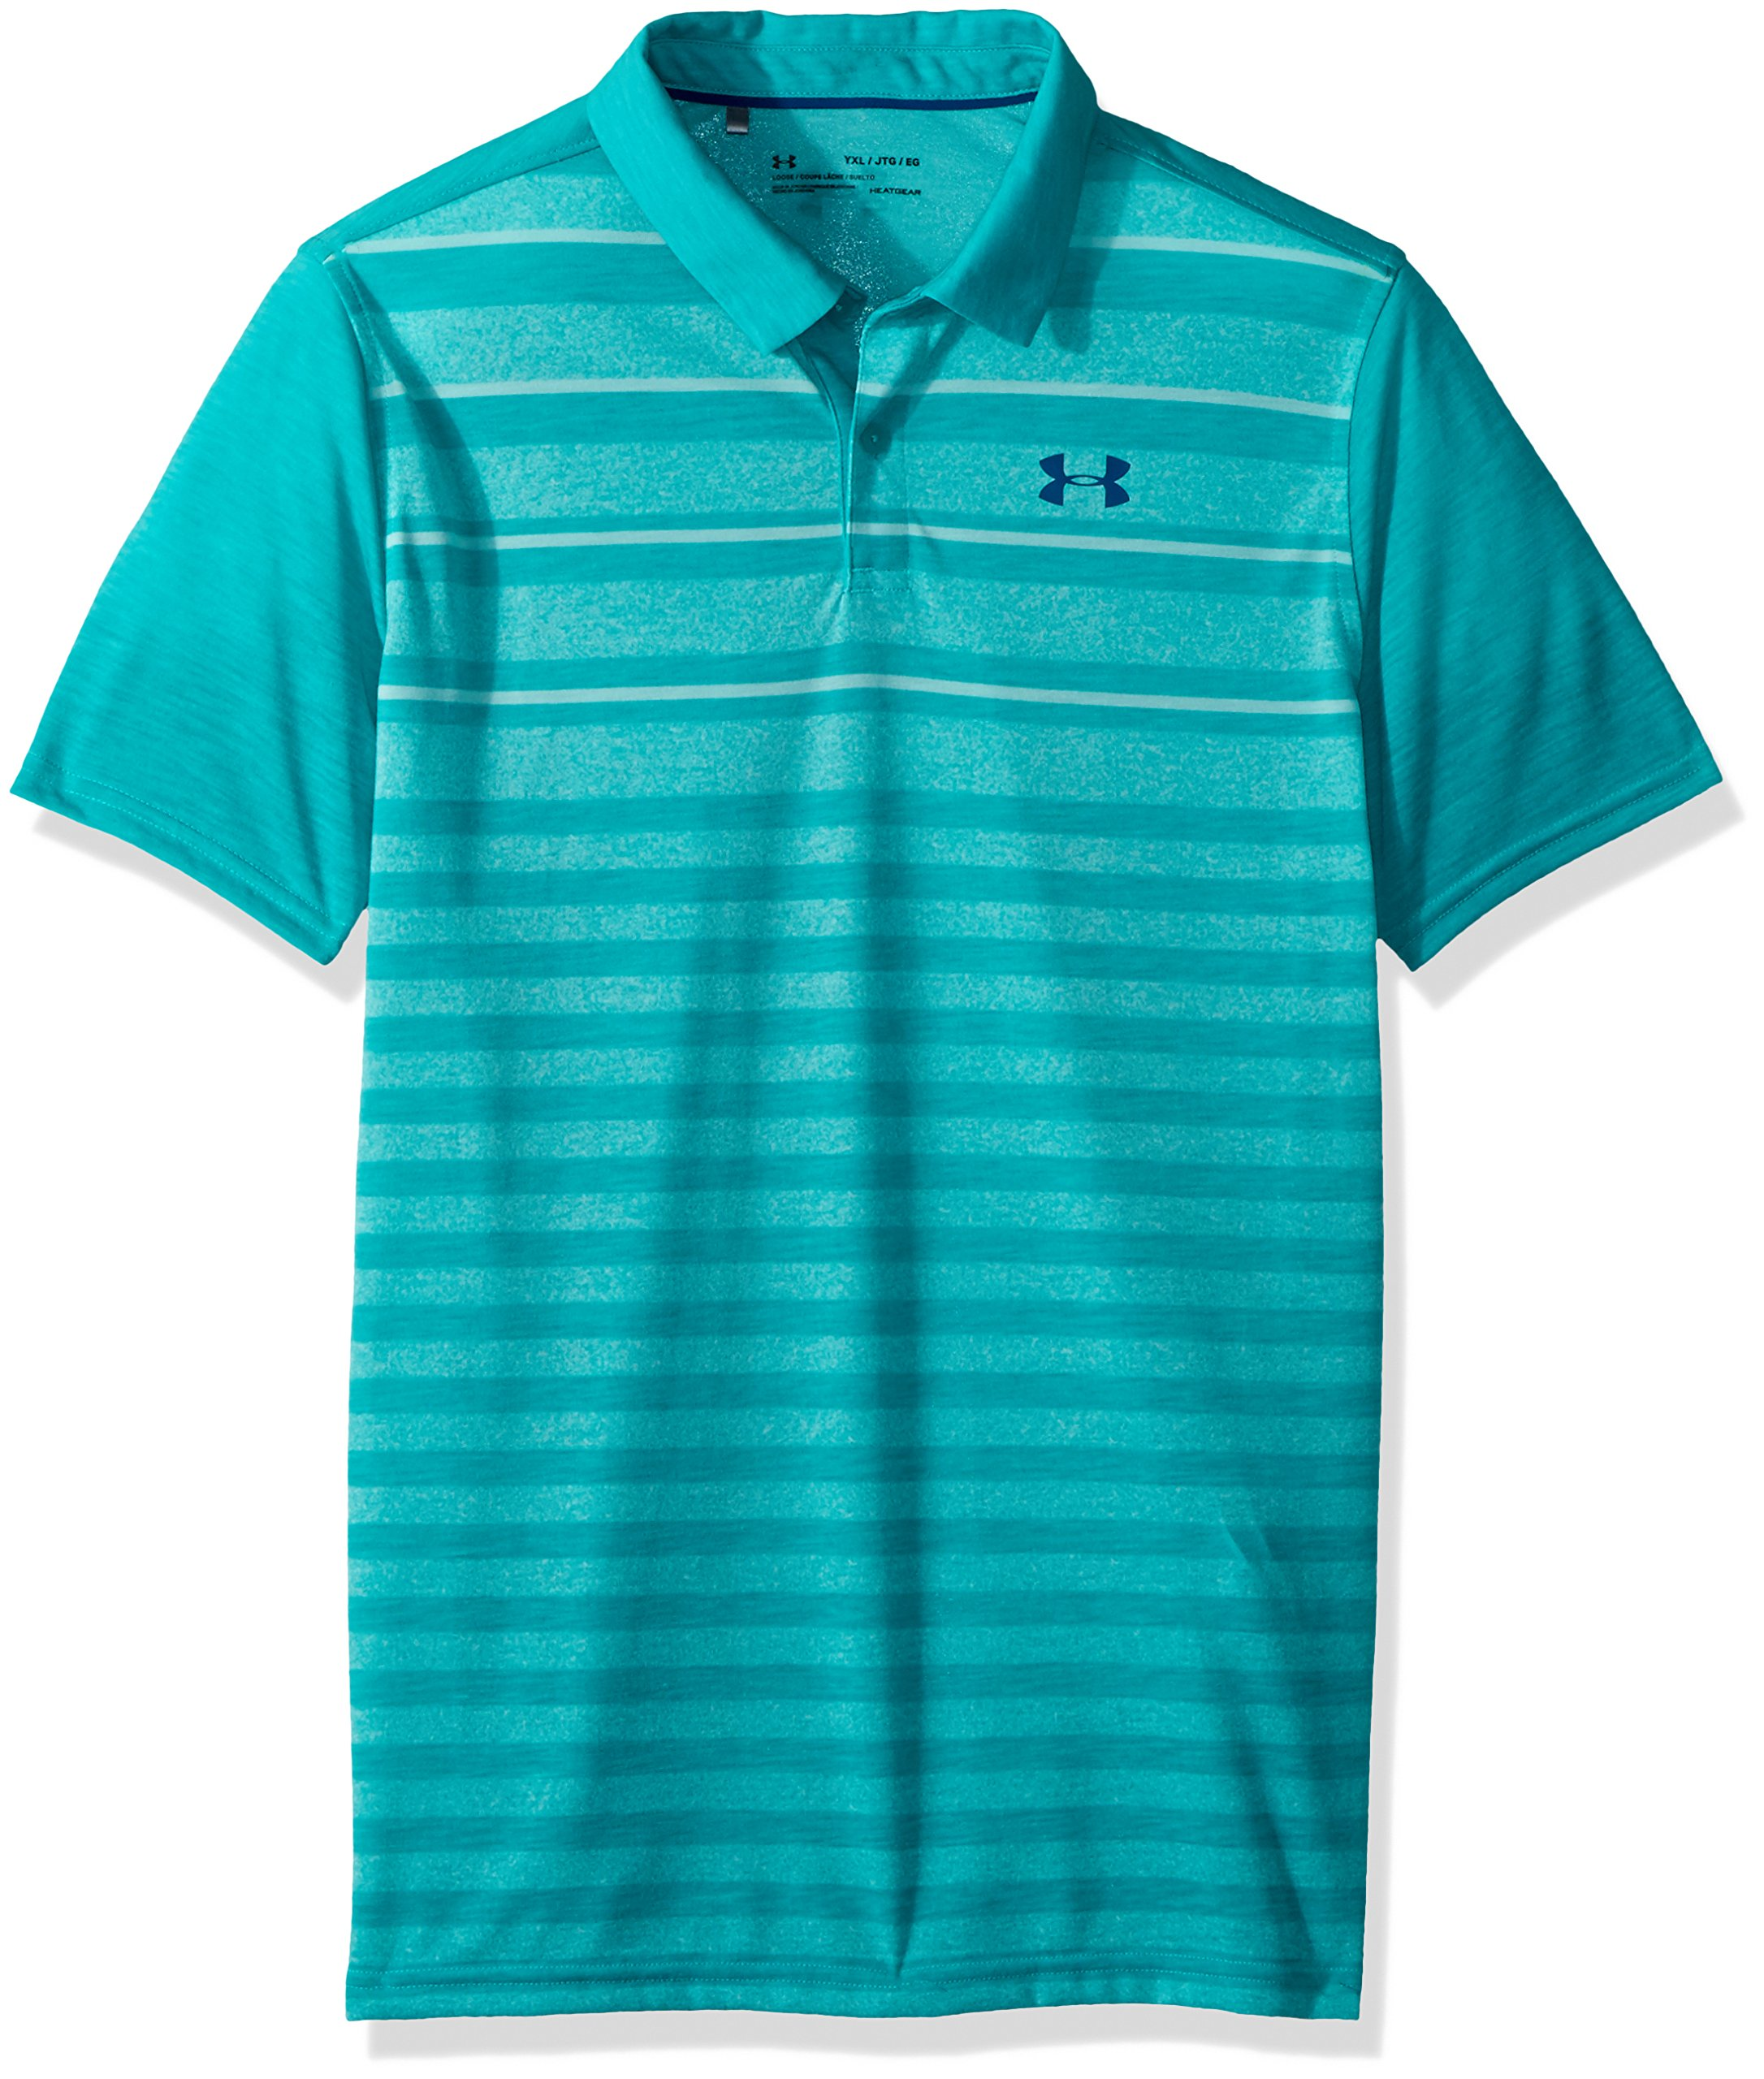 Under Armour Boys' Threadborne yd Engineered, Teal Punch (594)/Moroccan Blue, Youth X-Small by Under Armour